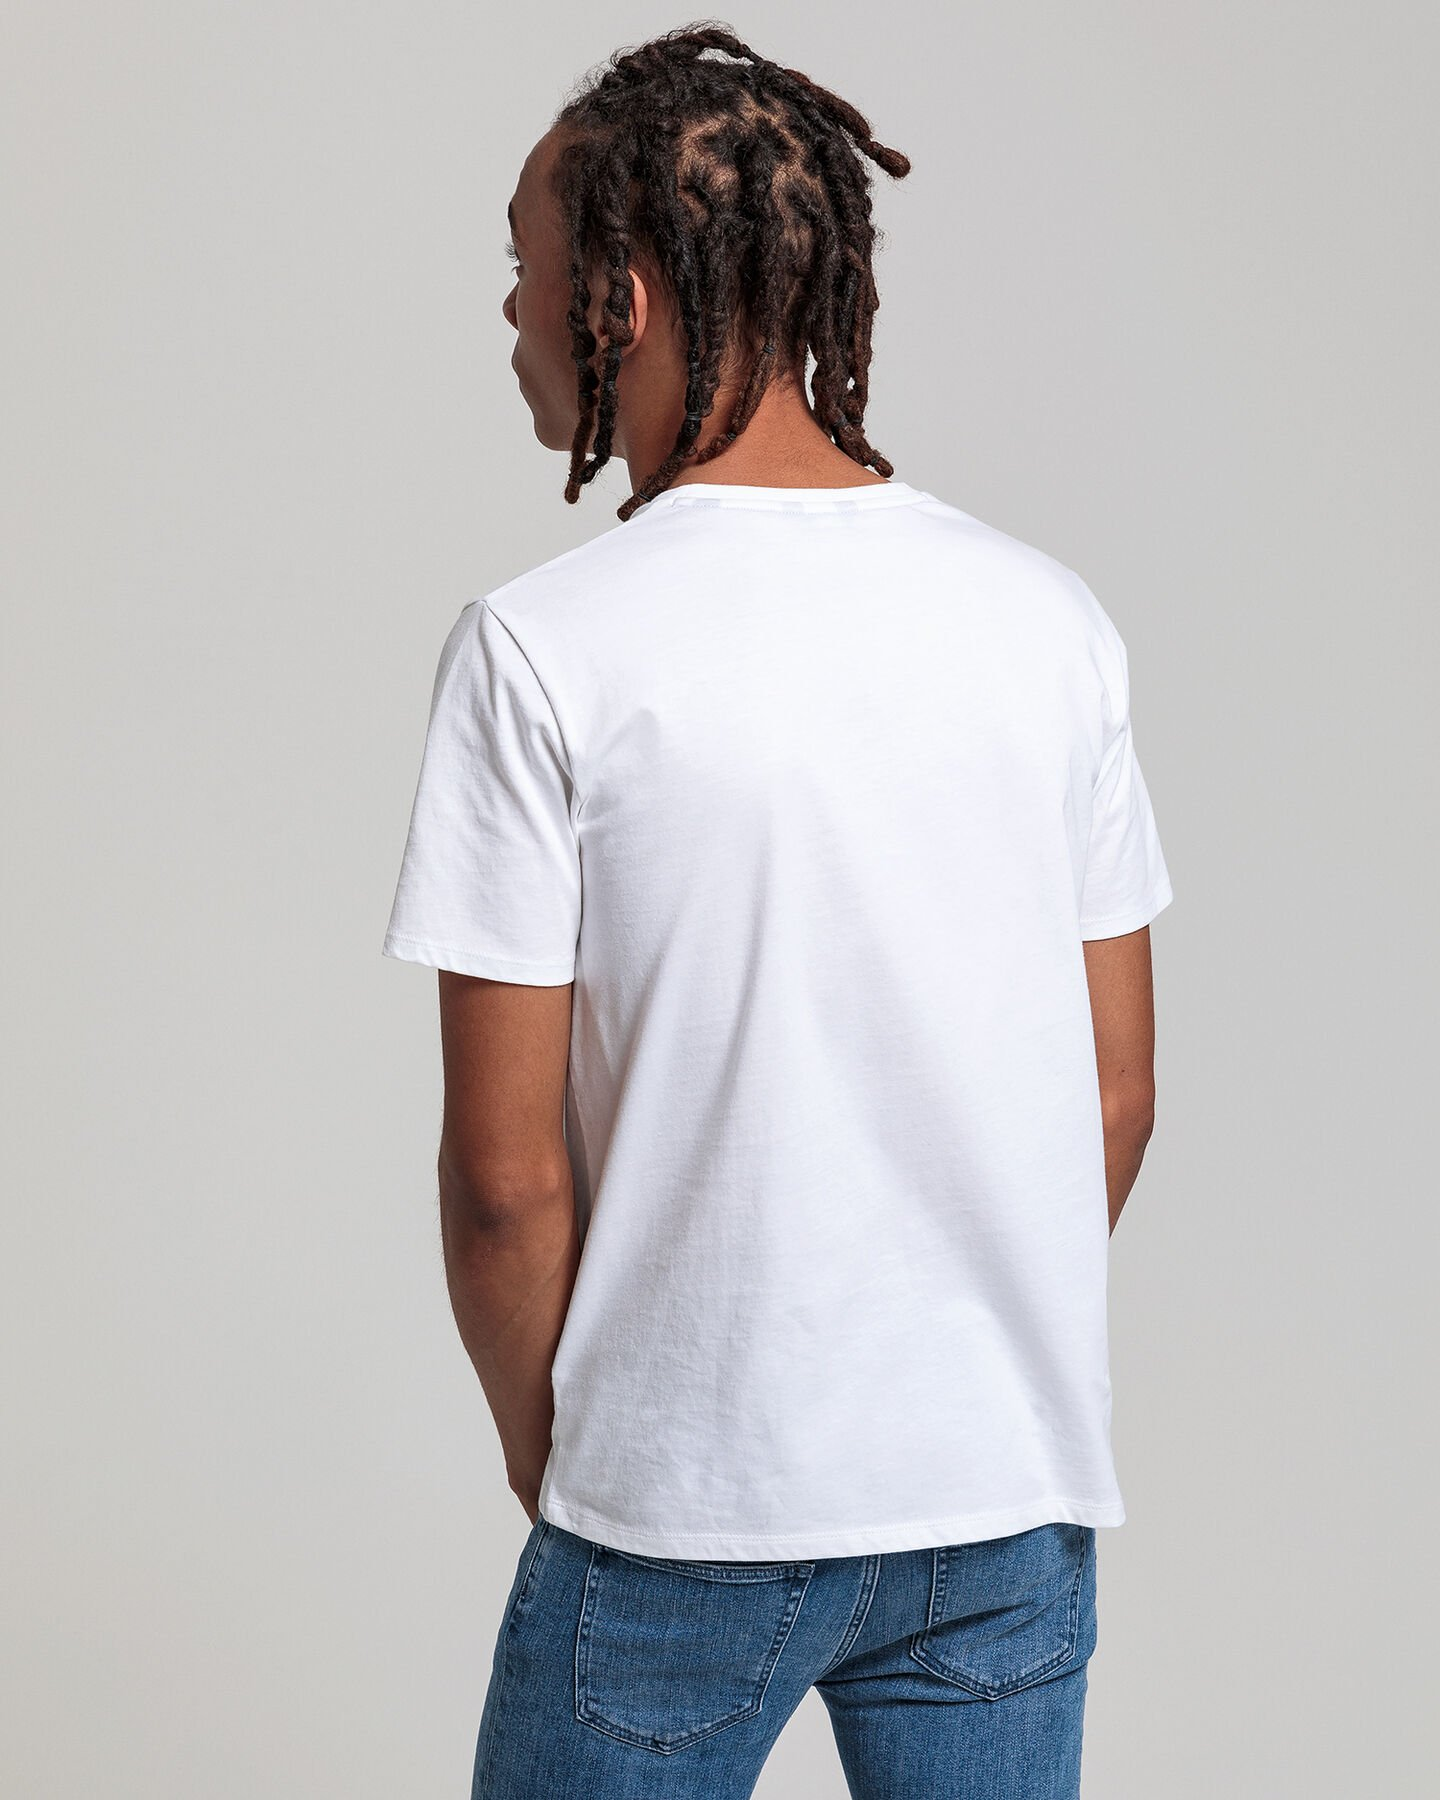 Teen Boys T-Shirt